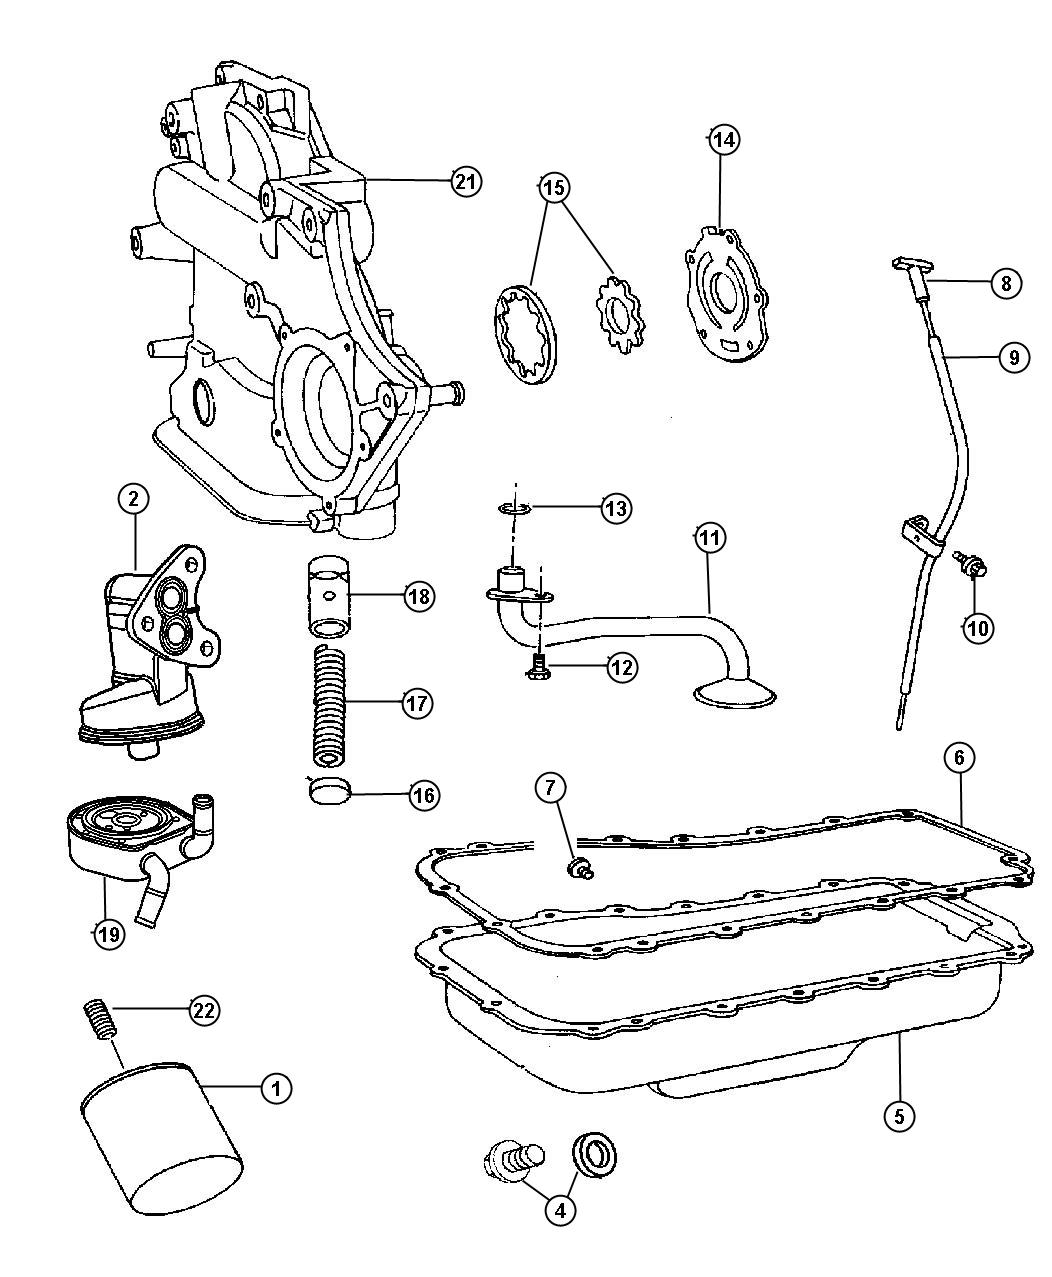 window wiring diagram 2006 kia sorento window discover your 2007 kia rio spark plug location